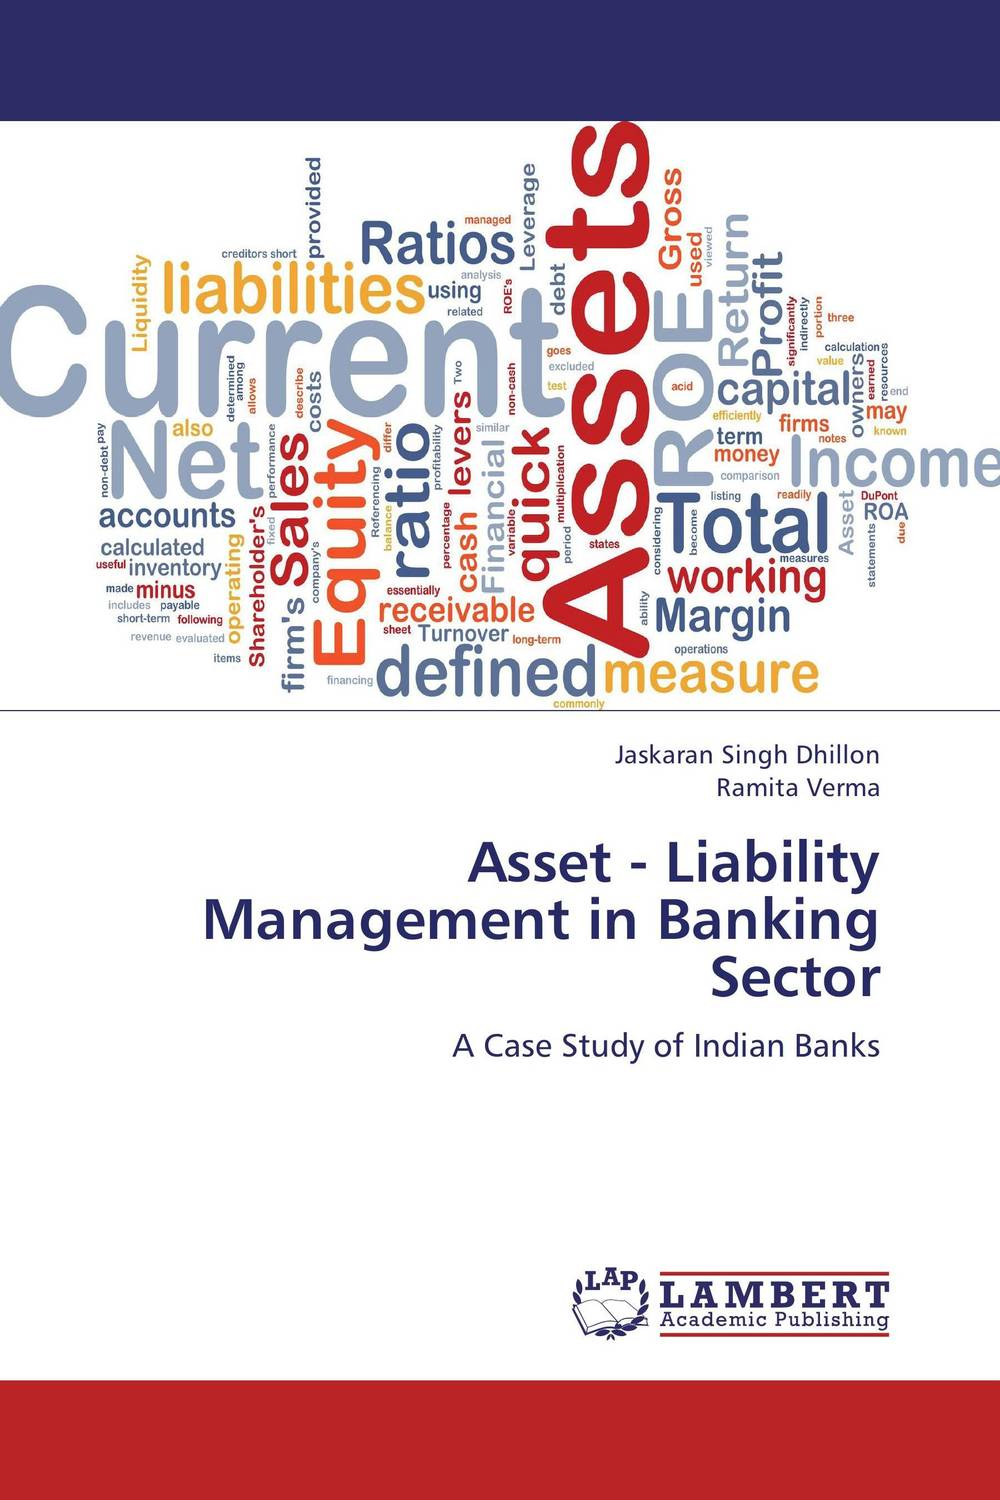 Asset - Liability Management in Banking Sector capital structure and risk dynamics among banks